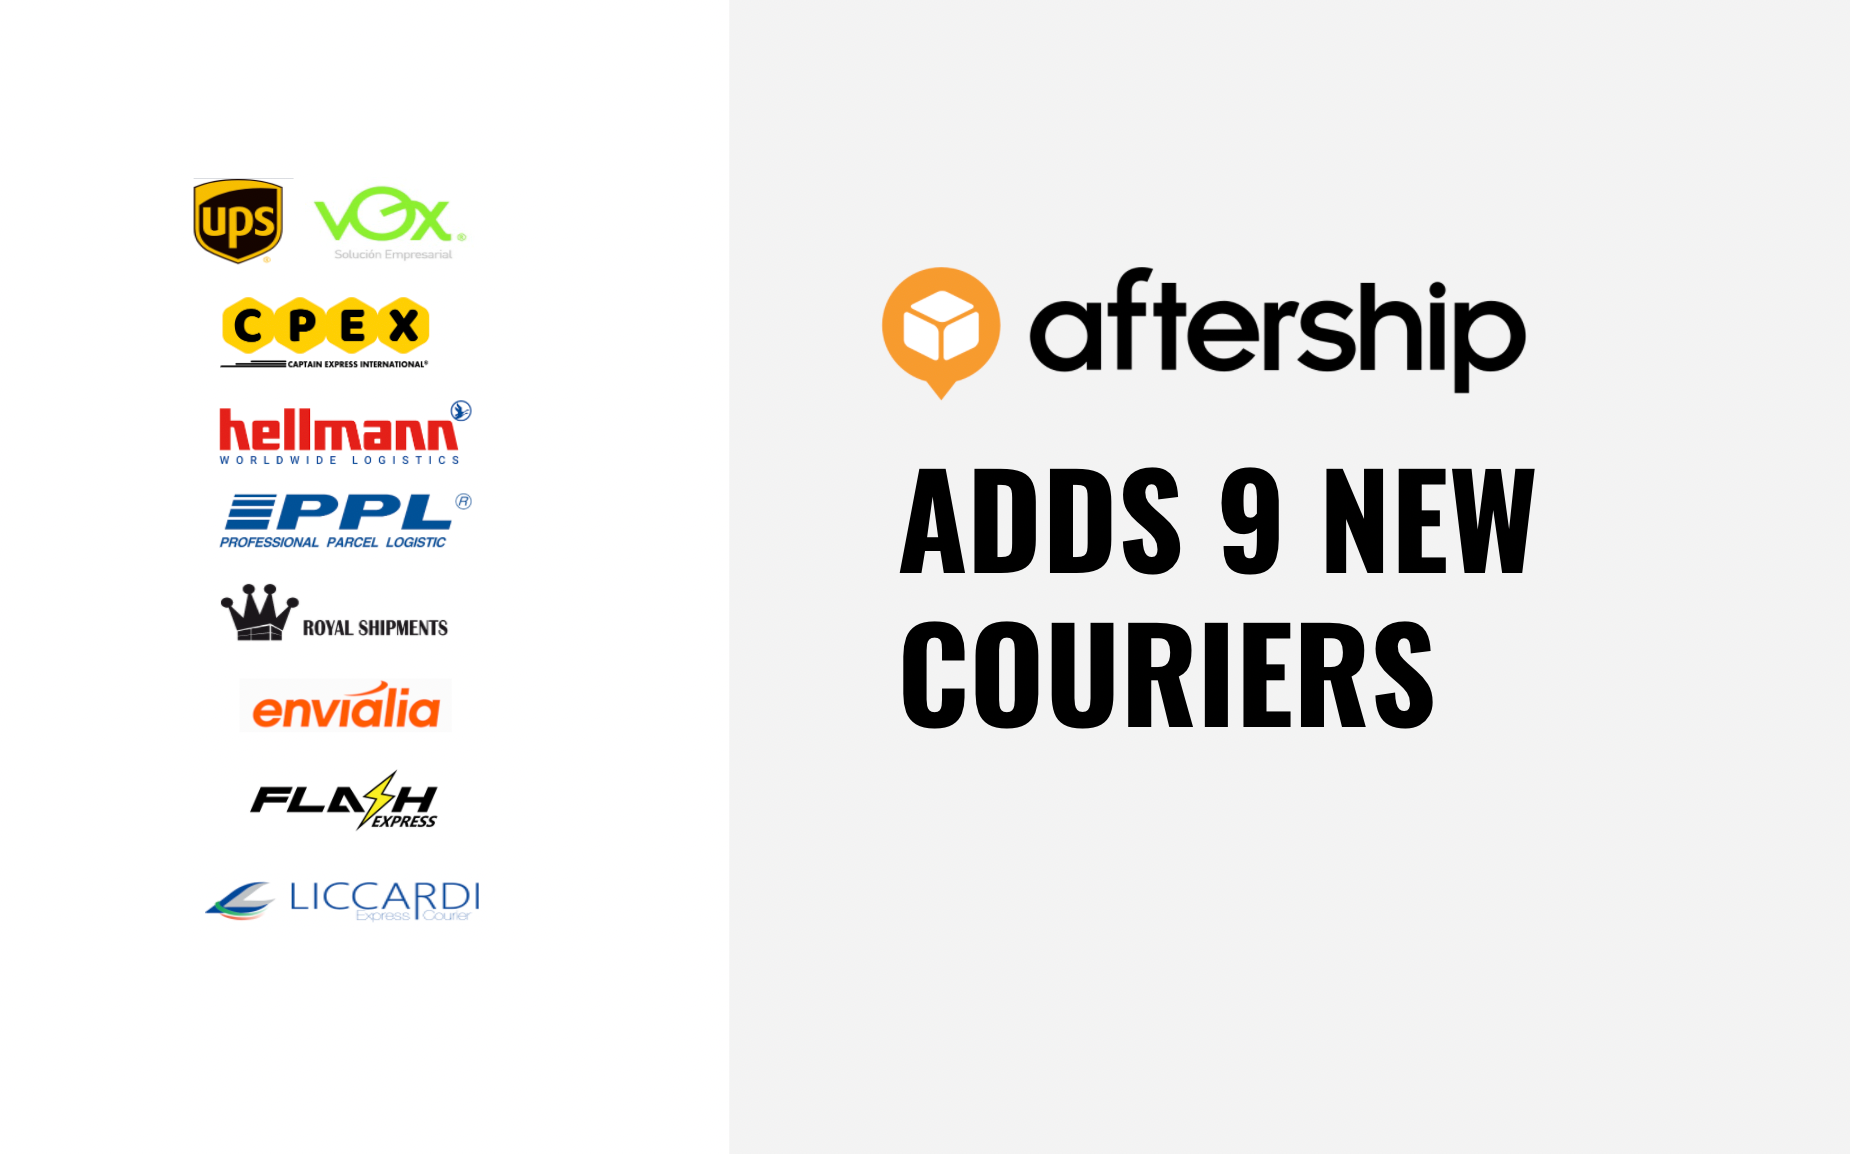 AfterShip adds 9 new couriers this week (2nd Feb 2021 to 8th Feb 2021)